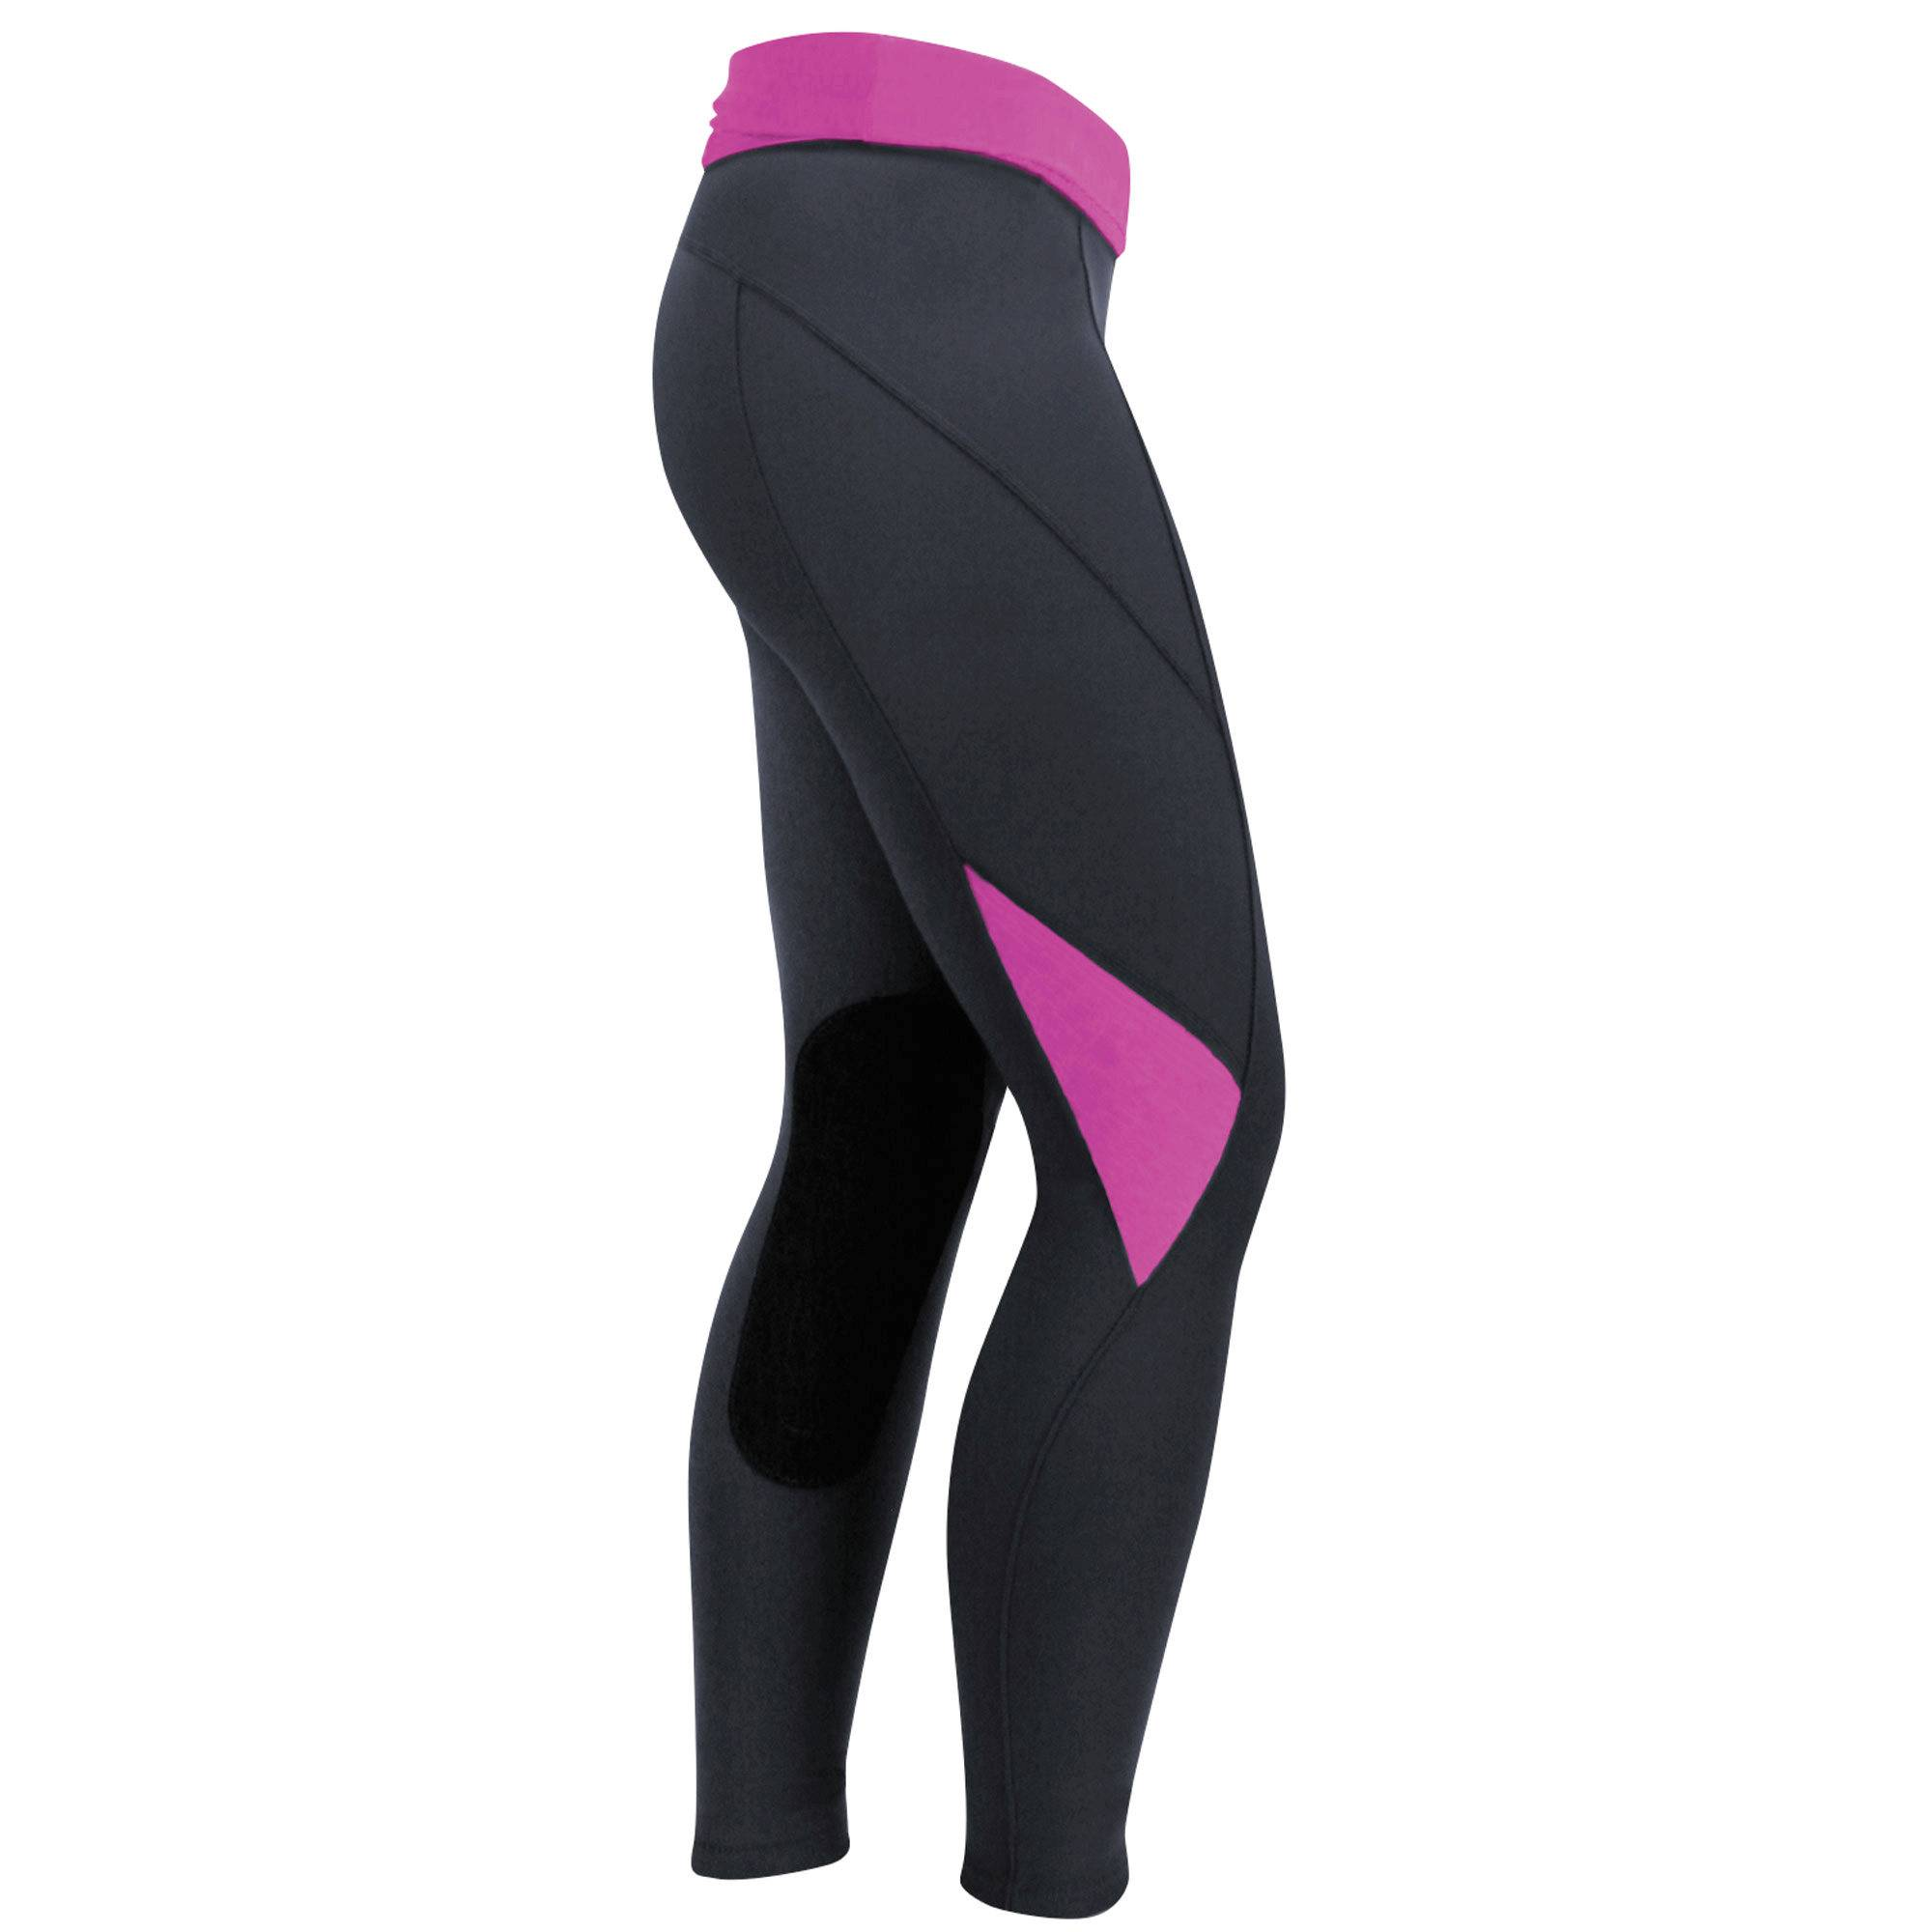 Irideon Ladies' Issential CrossBand Tights